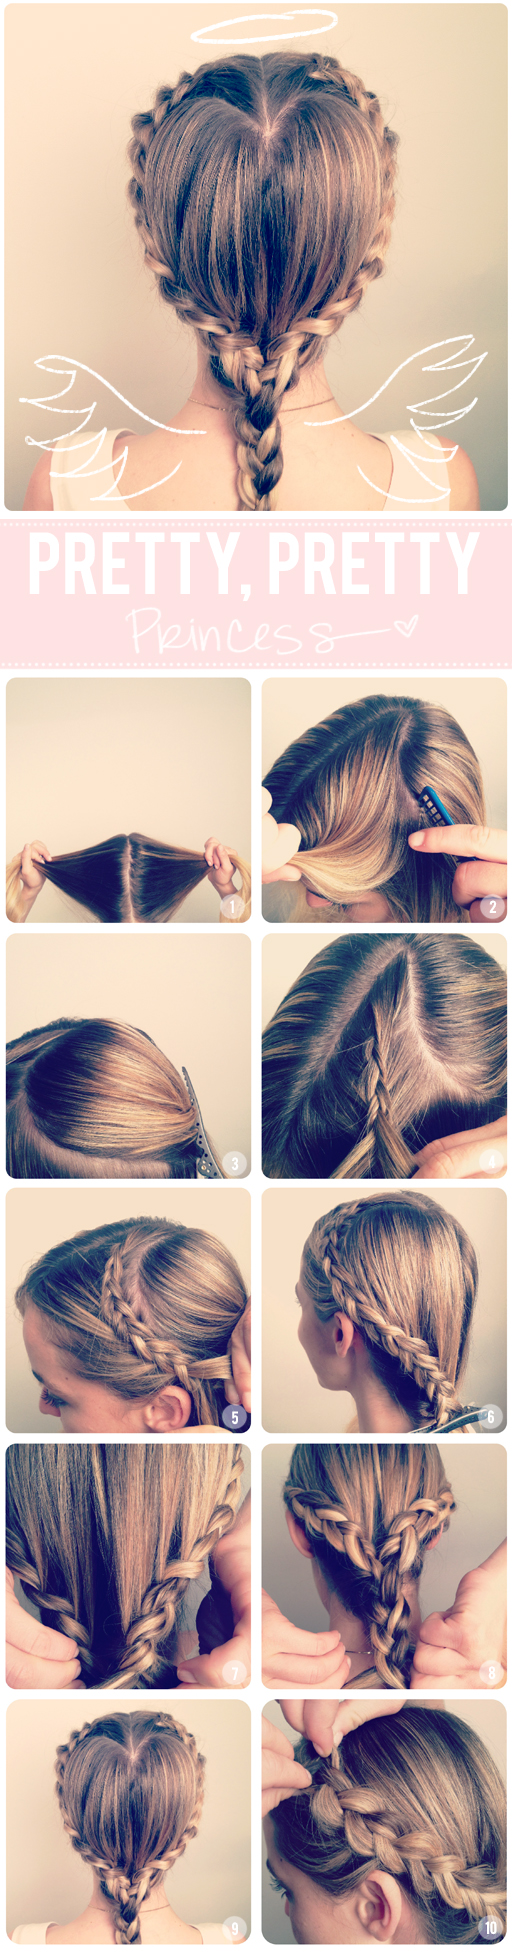 easy hairstyles using plaits braids 11 Interesting And Useful Hair Tutorials For Every Day   Fashion